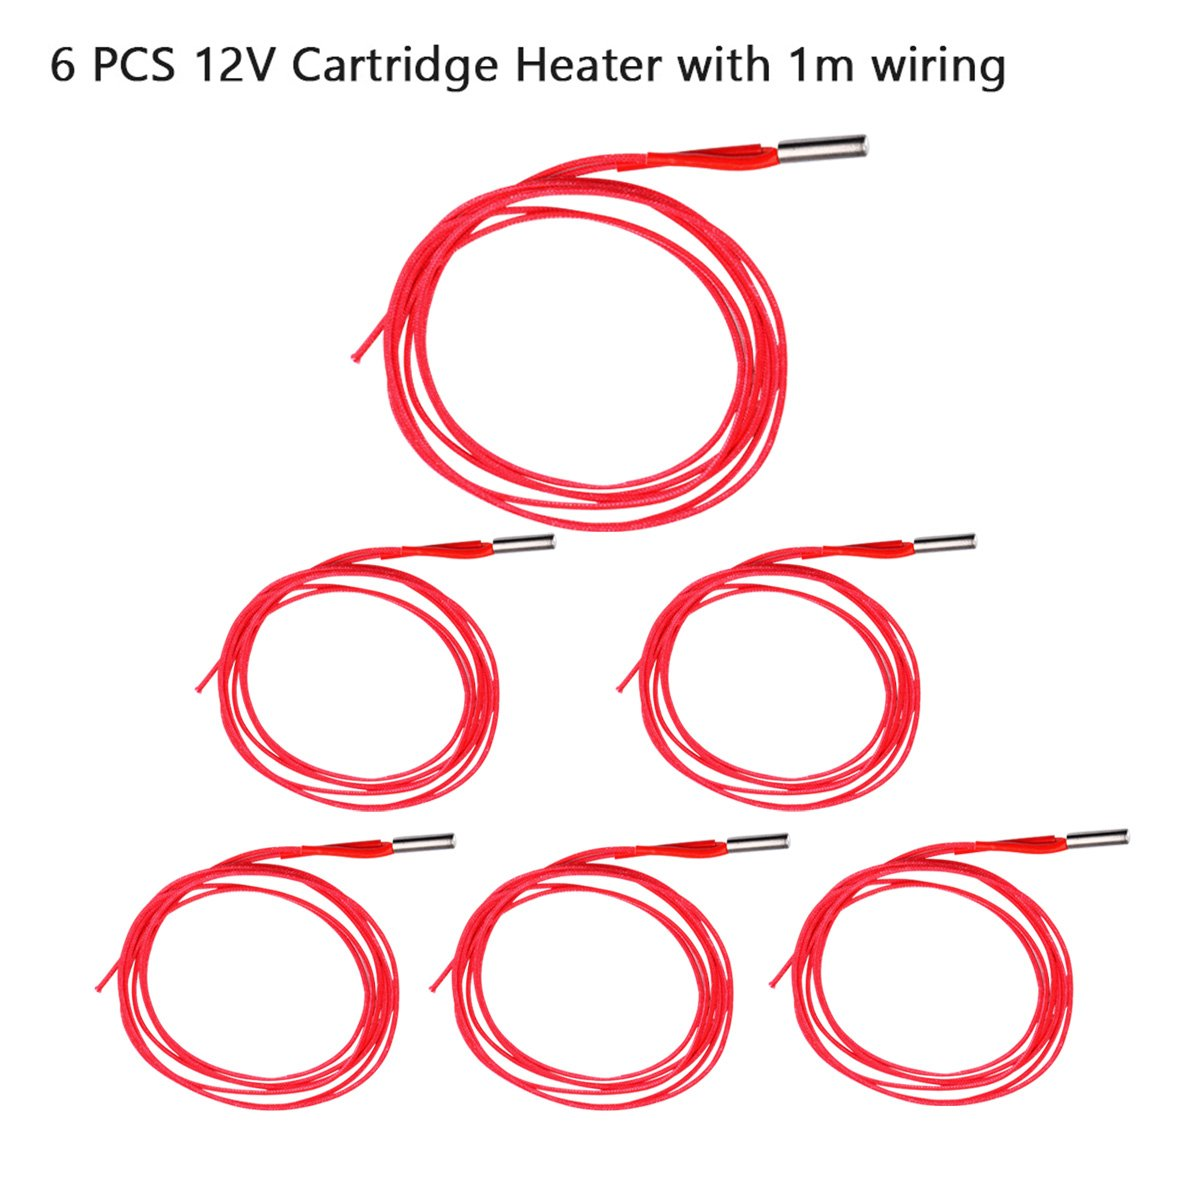 Unime 12v 40w 620 Ceramic Cartridge Heater And Ntc Wiring Diagram Thermistor 100k 3950 For 3d Printerpack Of 12pcs Electronics